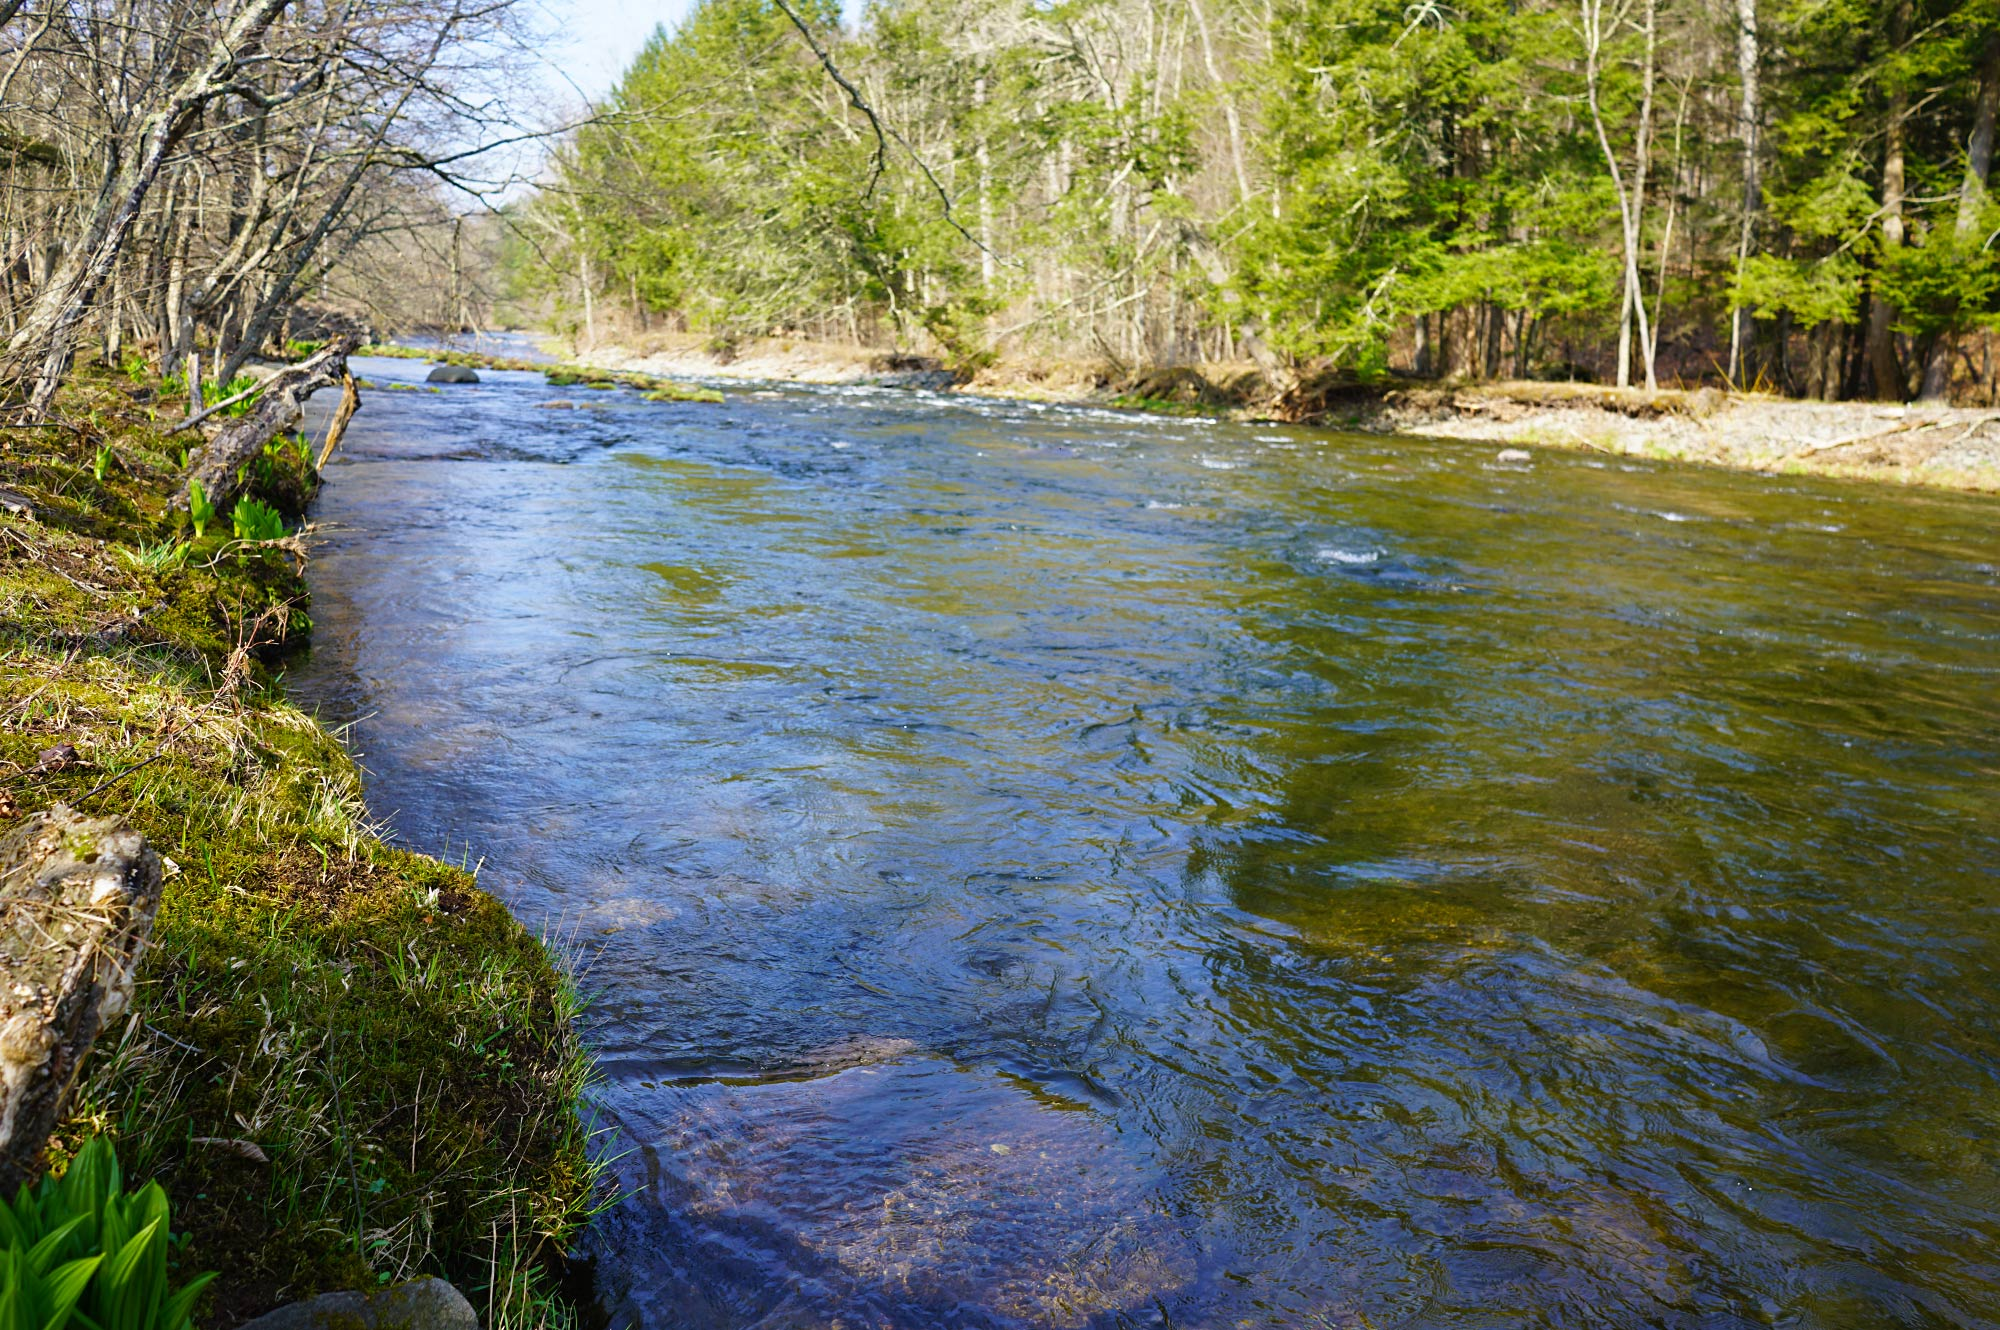 Upper Beaverkill River, Catskill Mountains, New York